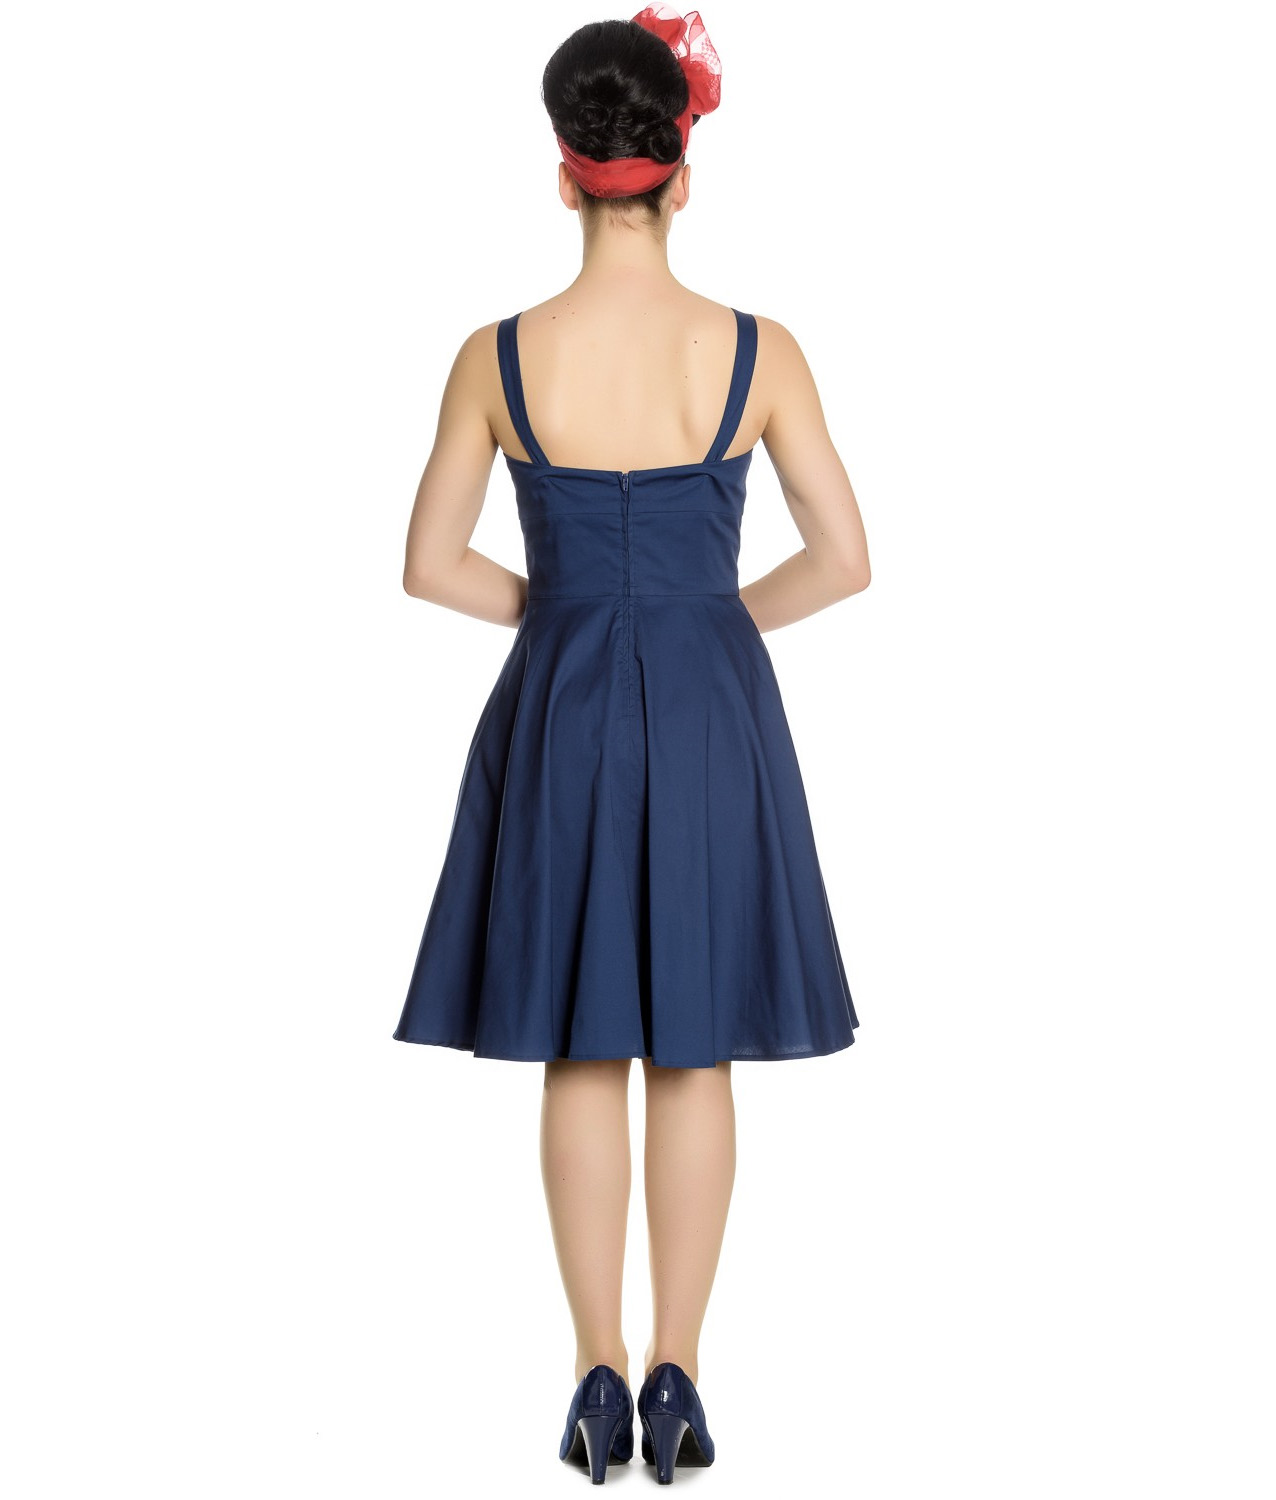 Hell-Bunny-Vintage-50s-Pin-Up-Dress-Navy-Blue-SELA-Nautical-Anchors-All-Sizes thumbnail 33